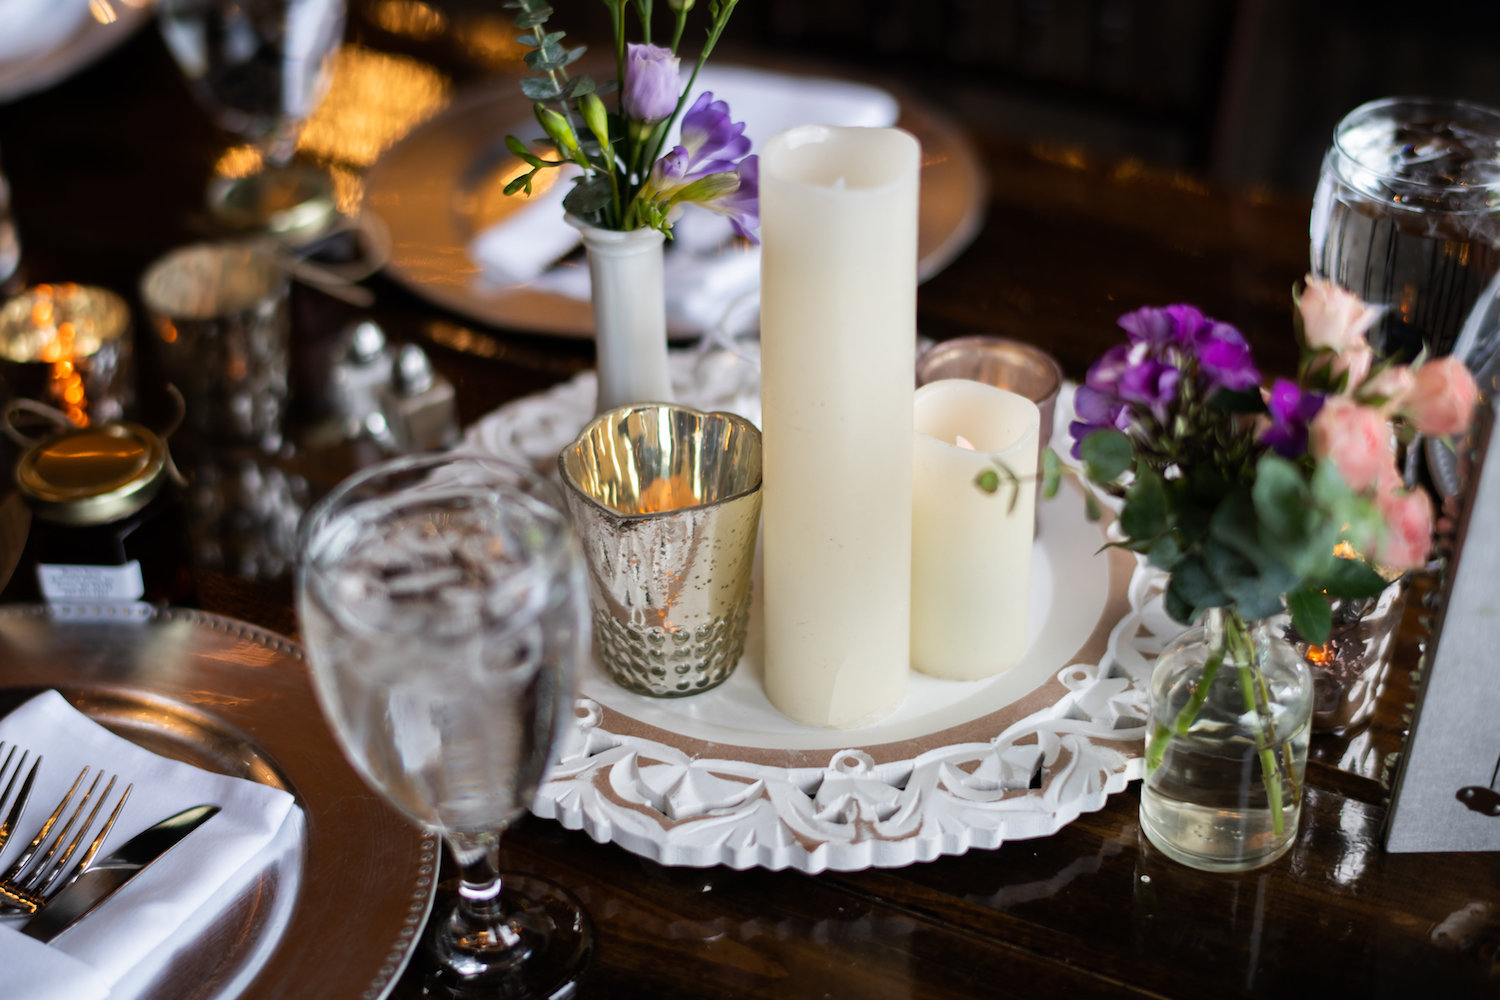 Sarah and Mark | Hope Glen Farm | Kelly Birch Photo | Sixpence Events & Planning wedding planning in Minnesota | led candles | frame tray with milk bud cases and purple lisianthus